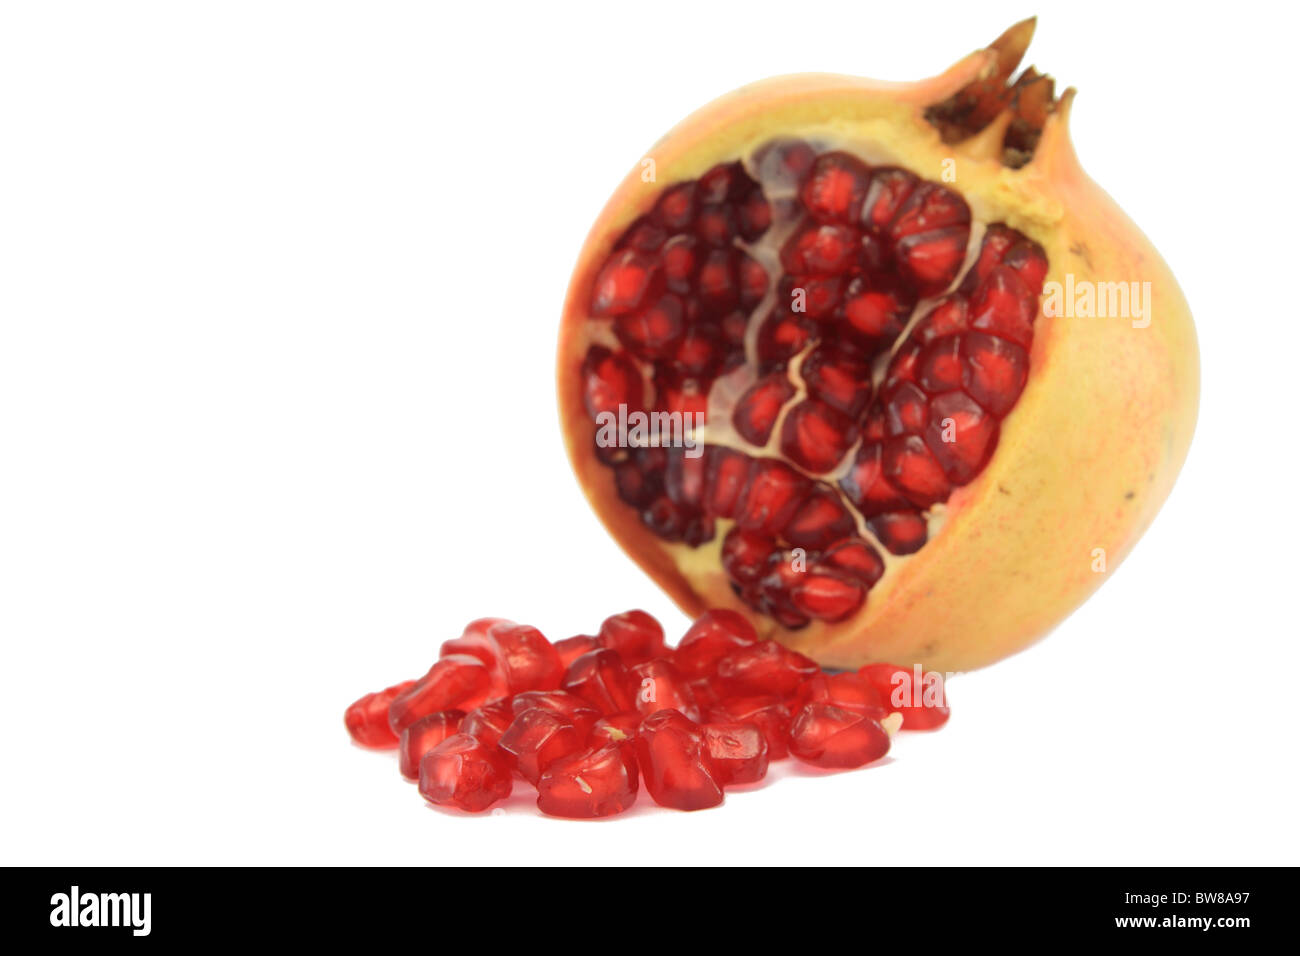 Granat apple with seed with white background - Stock Image